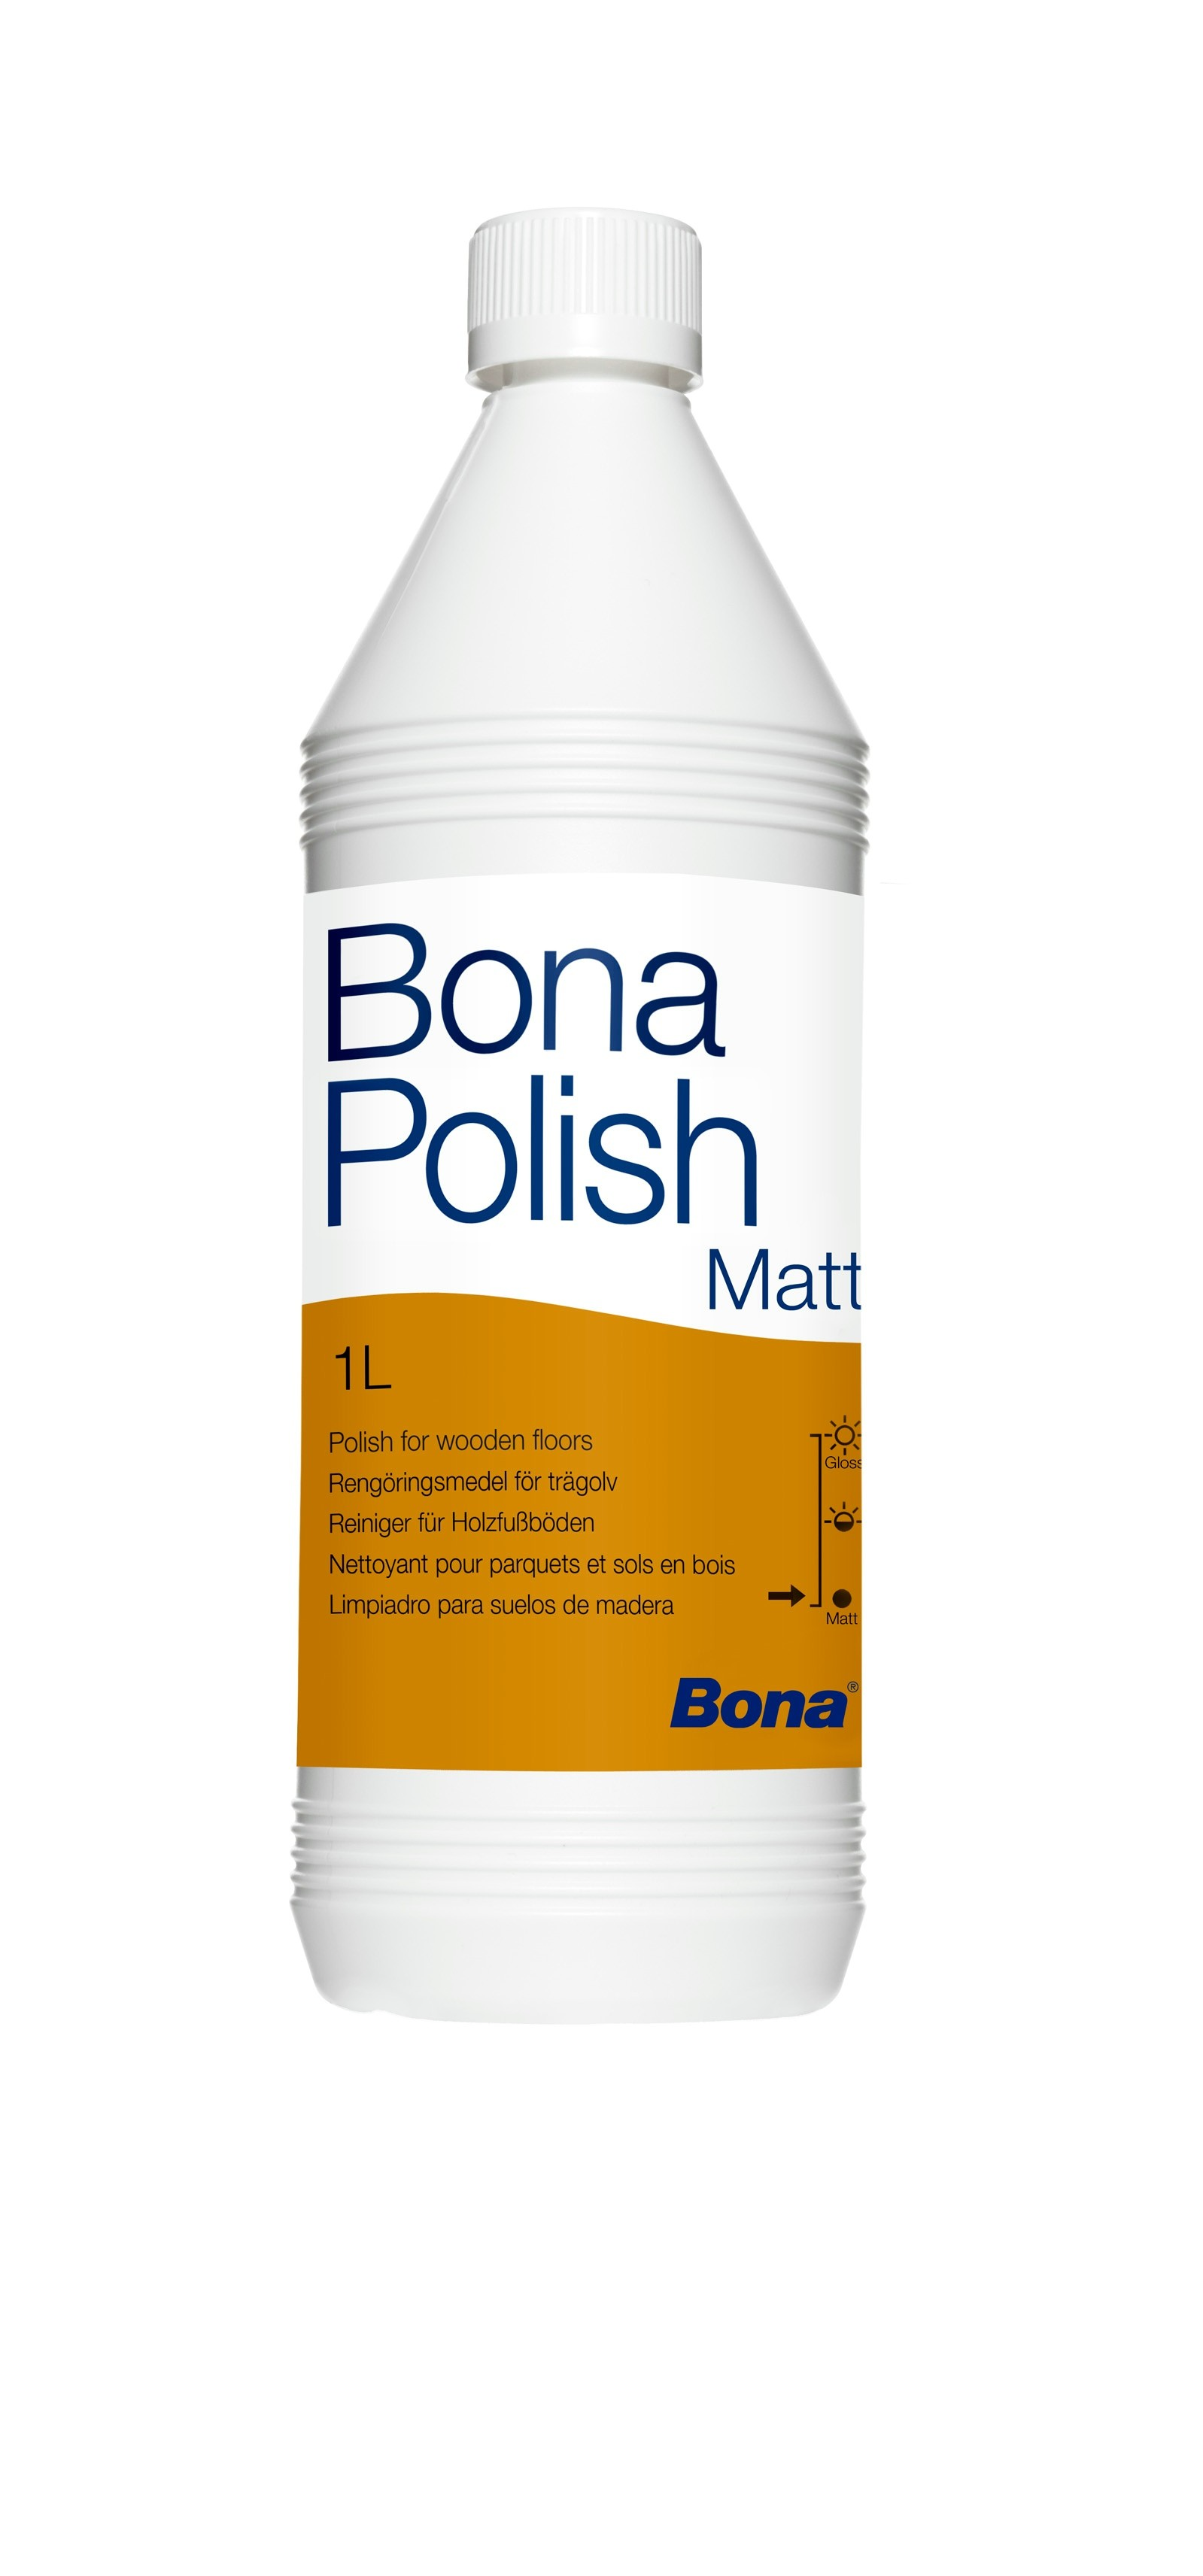 Bona Polish Matt 1L